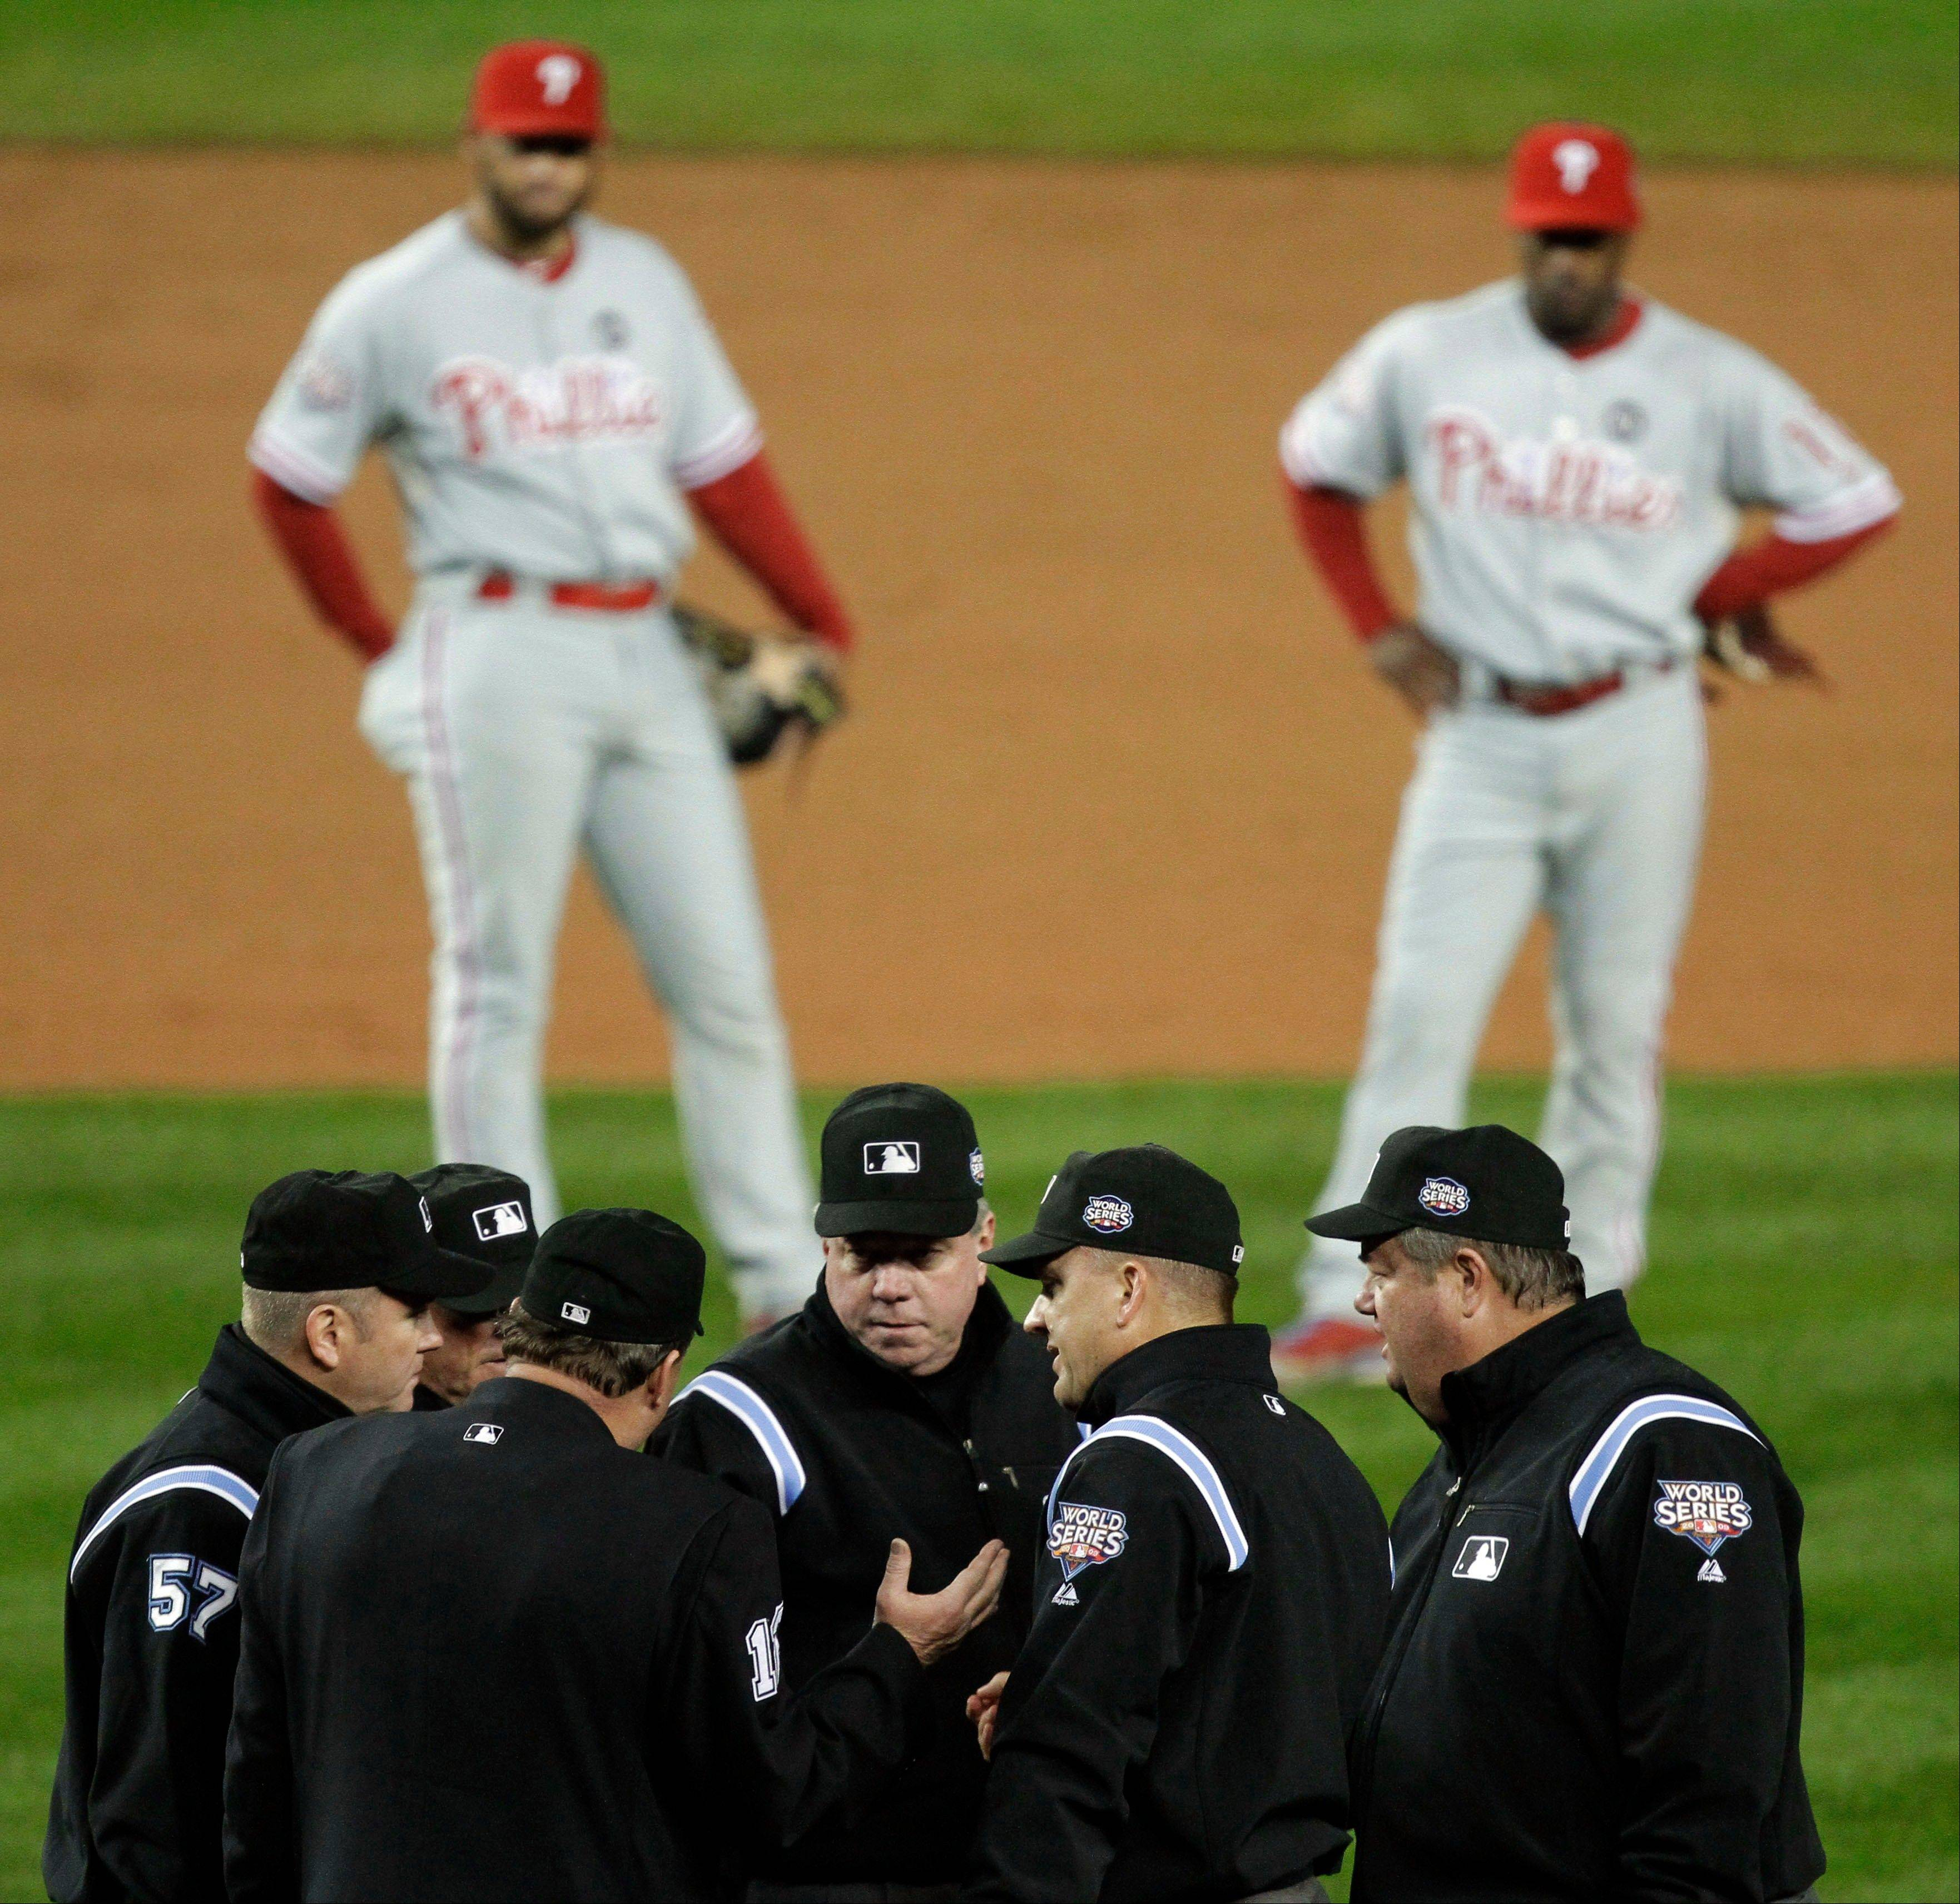 FILE - In this Oct. 28, 2009, file photo, Philadelphia Phillies' Pedro Feliz, left, and Jimmy Rollins watch in the background, as umpires discuss a call at first base during the fifth inning in Game 1 of the baseball's World Series against the New York Yankees in New York. Major League Baseball announced Thursday, Jan. 16, 2014, that it will greatly expand instant replay to review close calls starting this season. Each manager will be allowed to challenge at least one call per game. If he's right, he gets another challenge. After the seventh inning, a crew chief can request a review on his own.